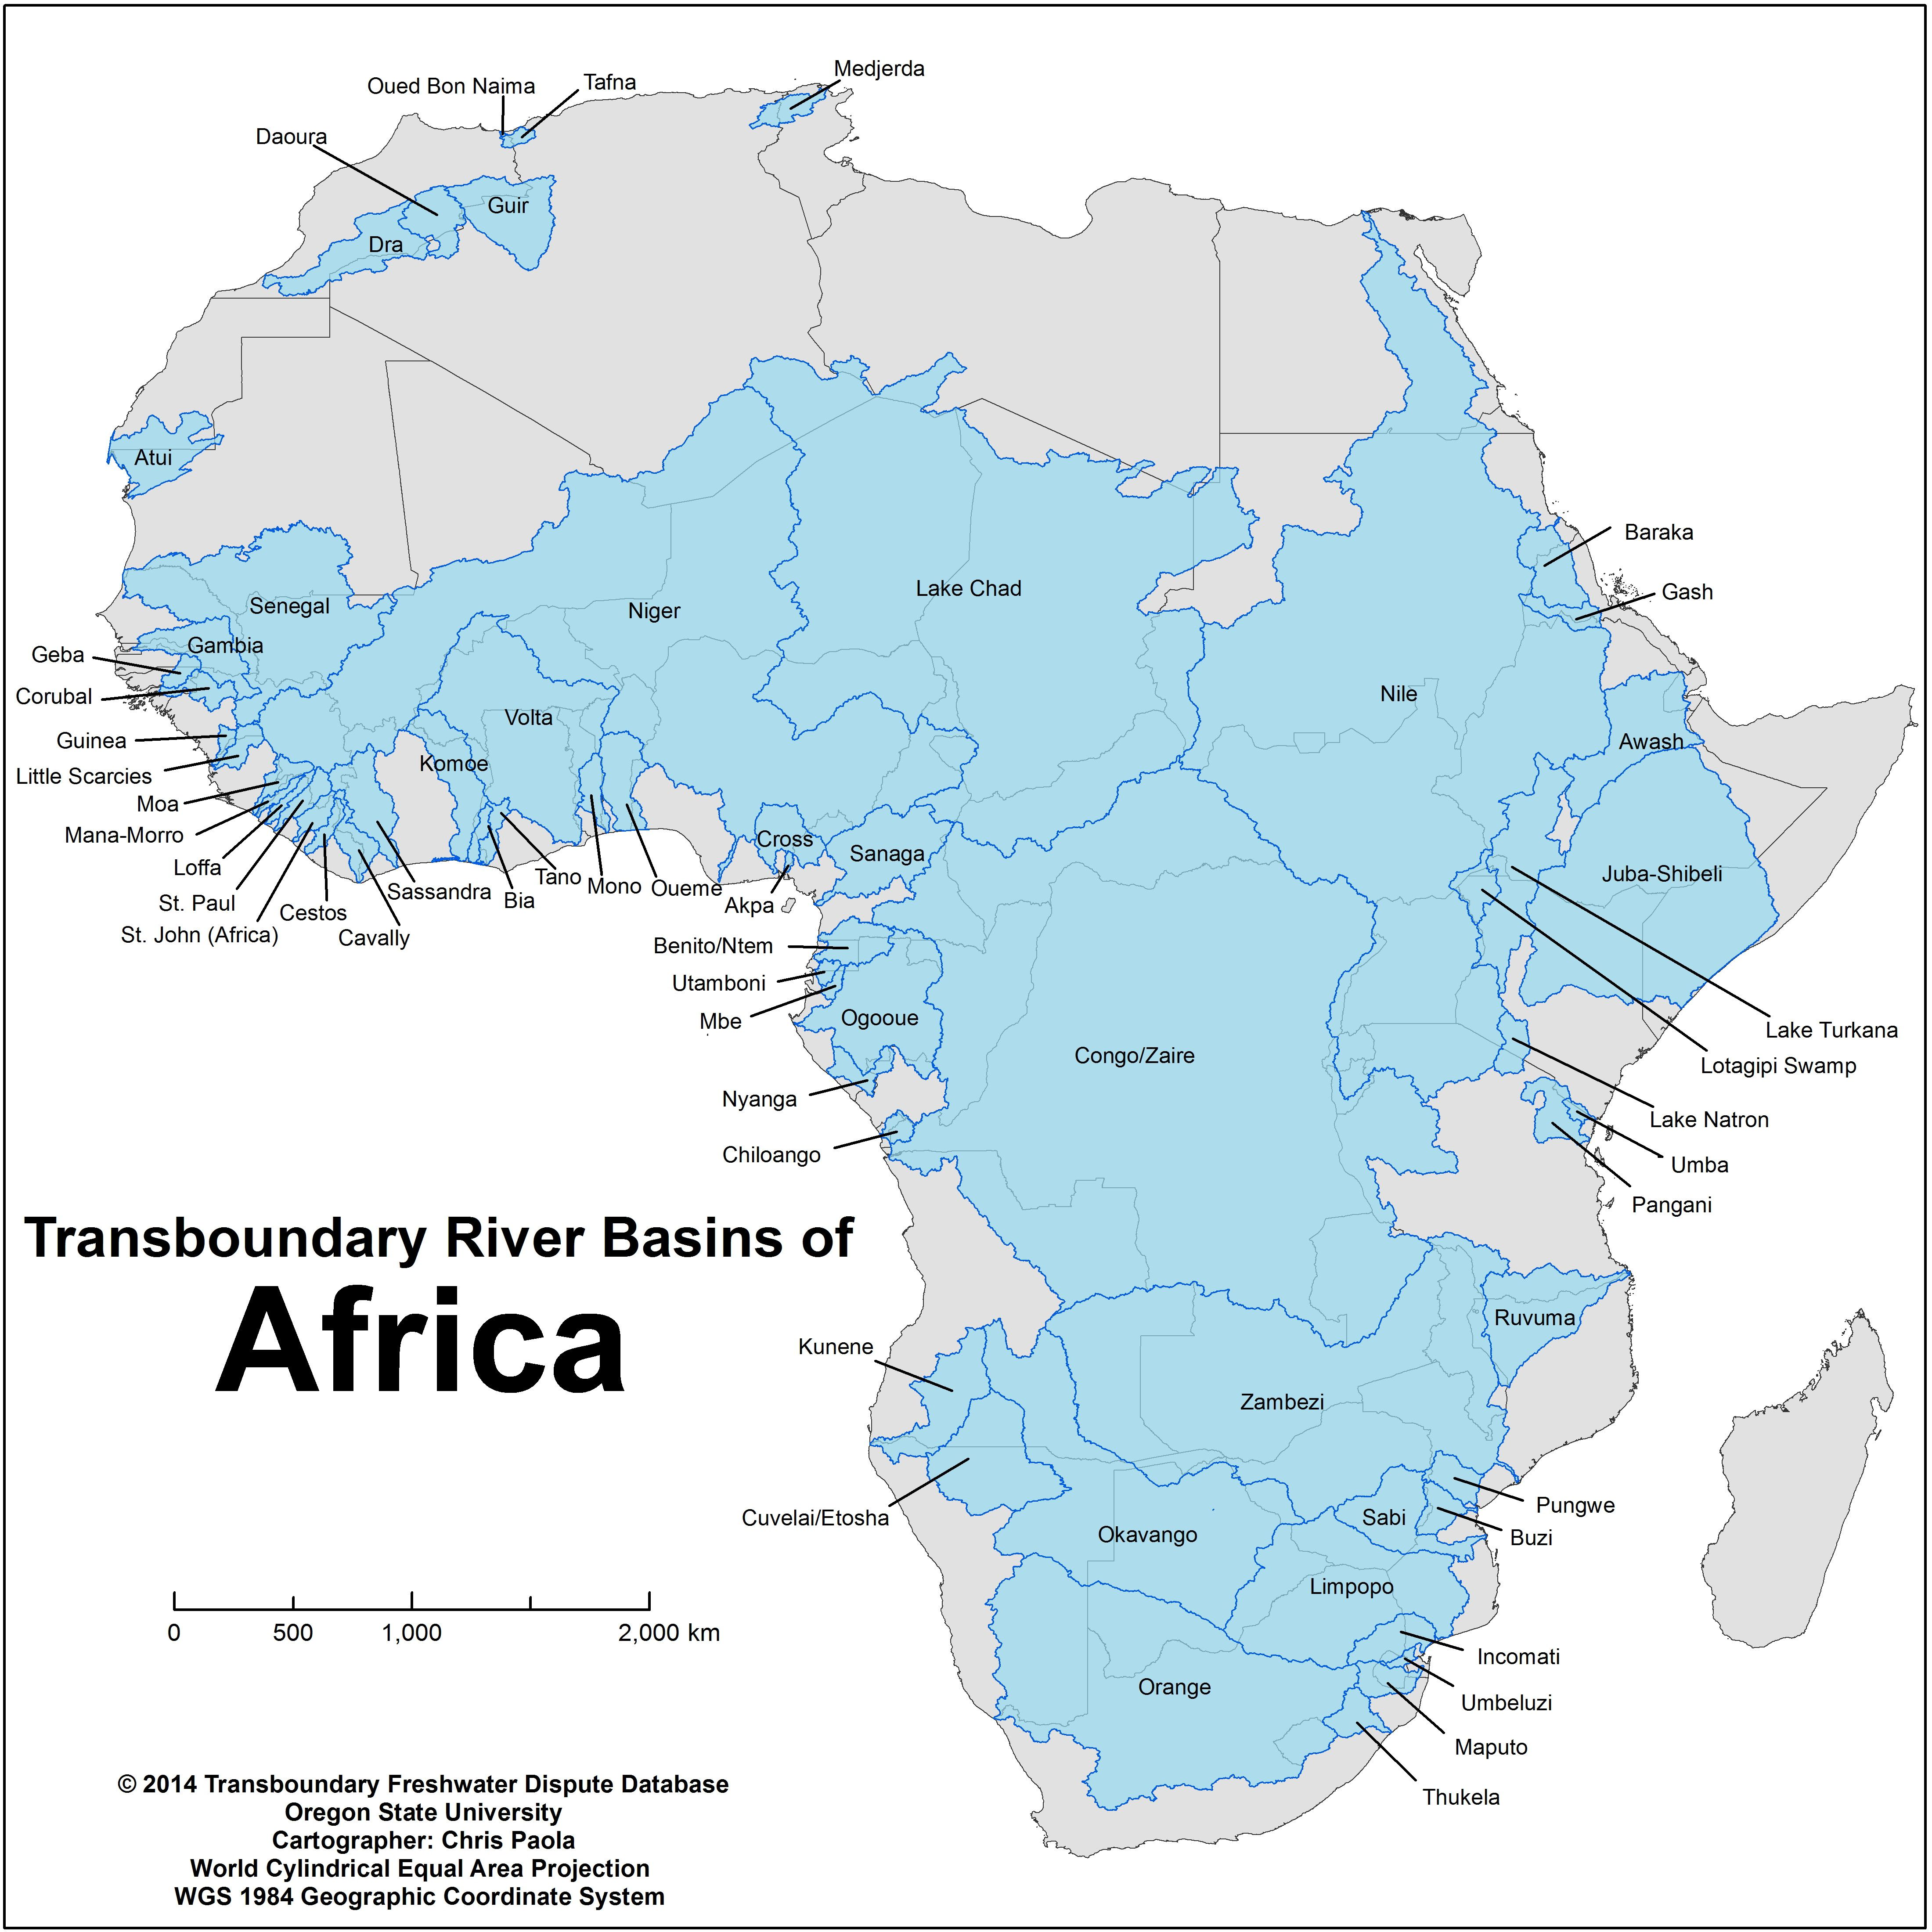 Africa River Basins Clean Water Pinterest - World map of rivers in africa